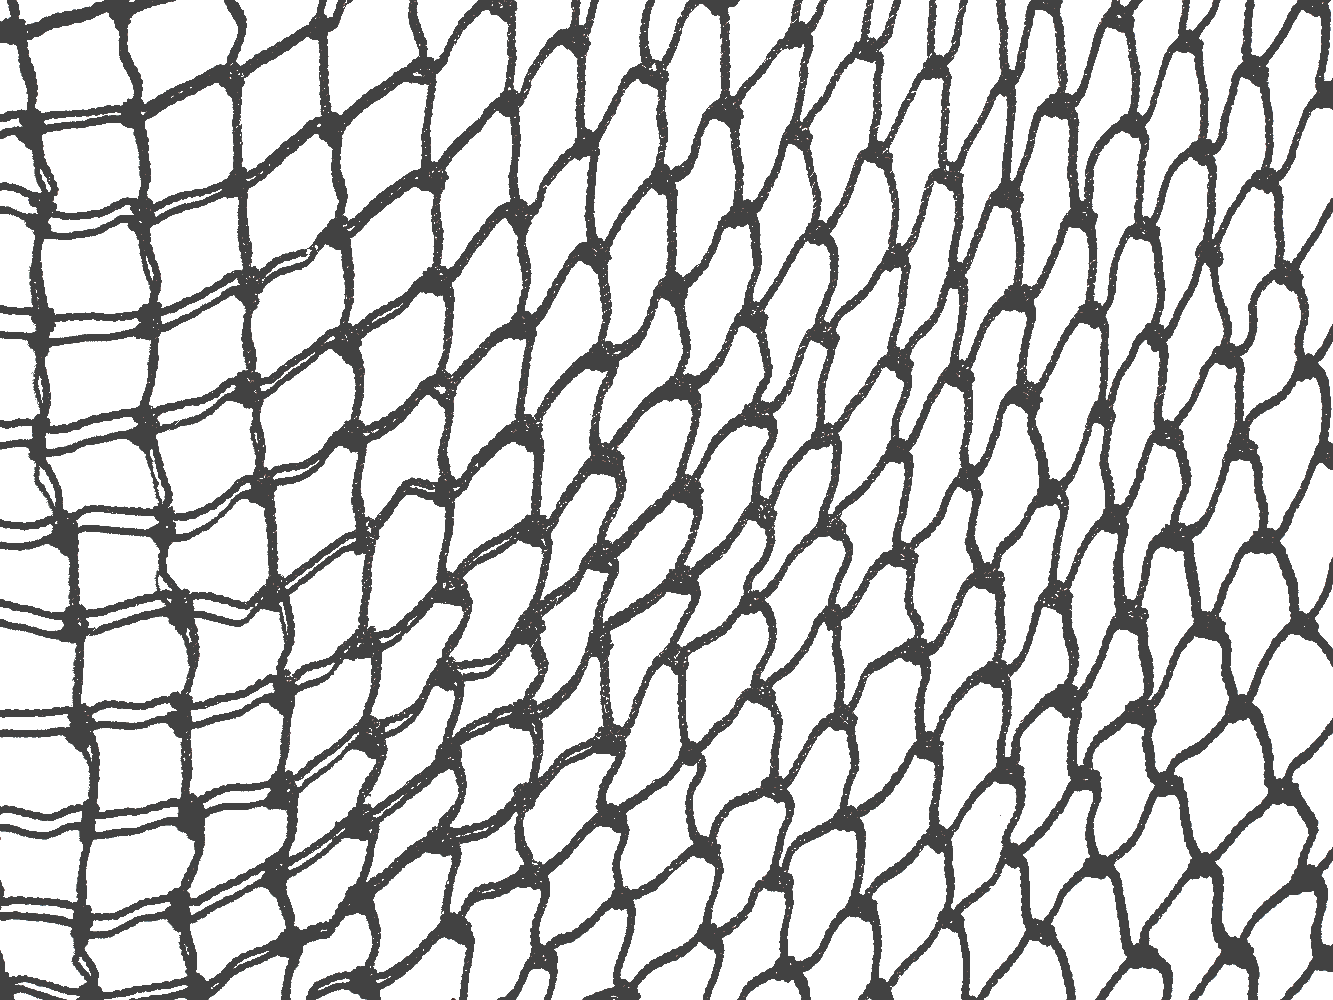 Download Fishnet Transparent Draw.